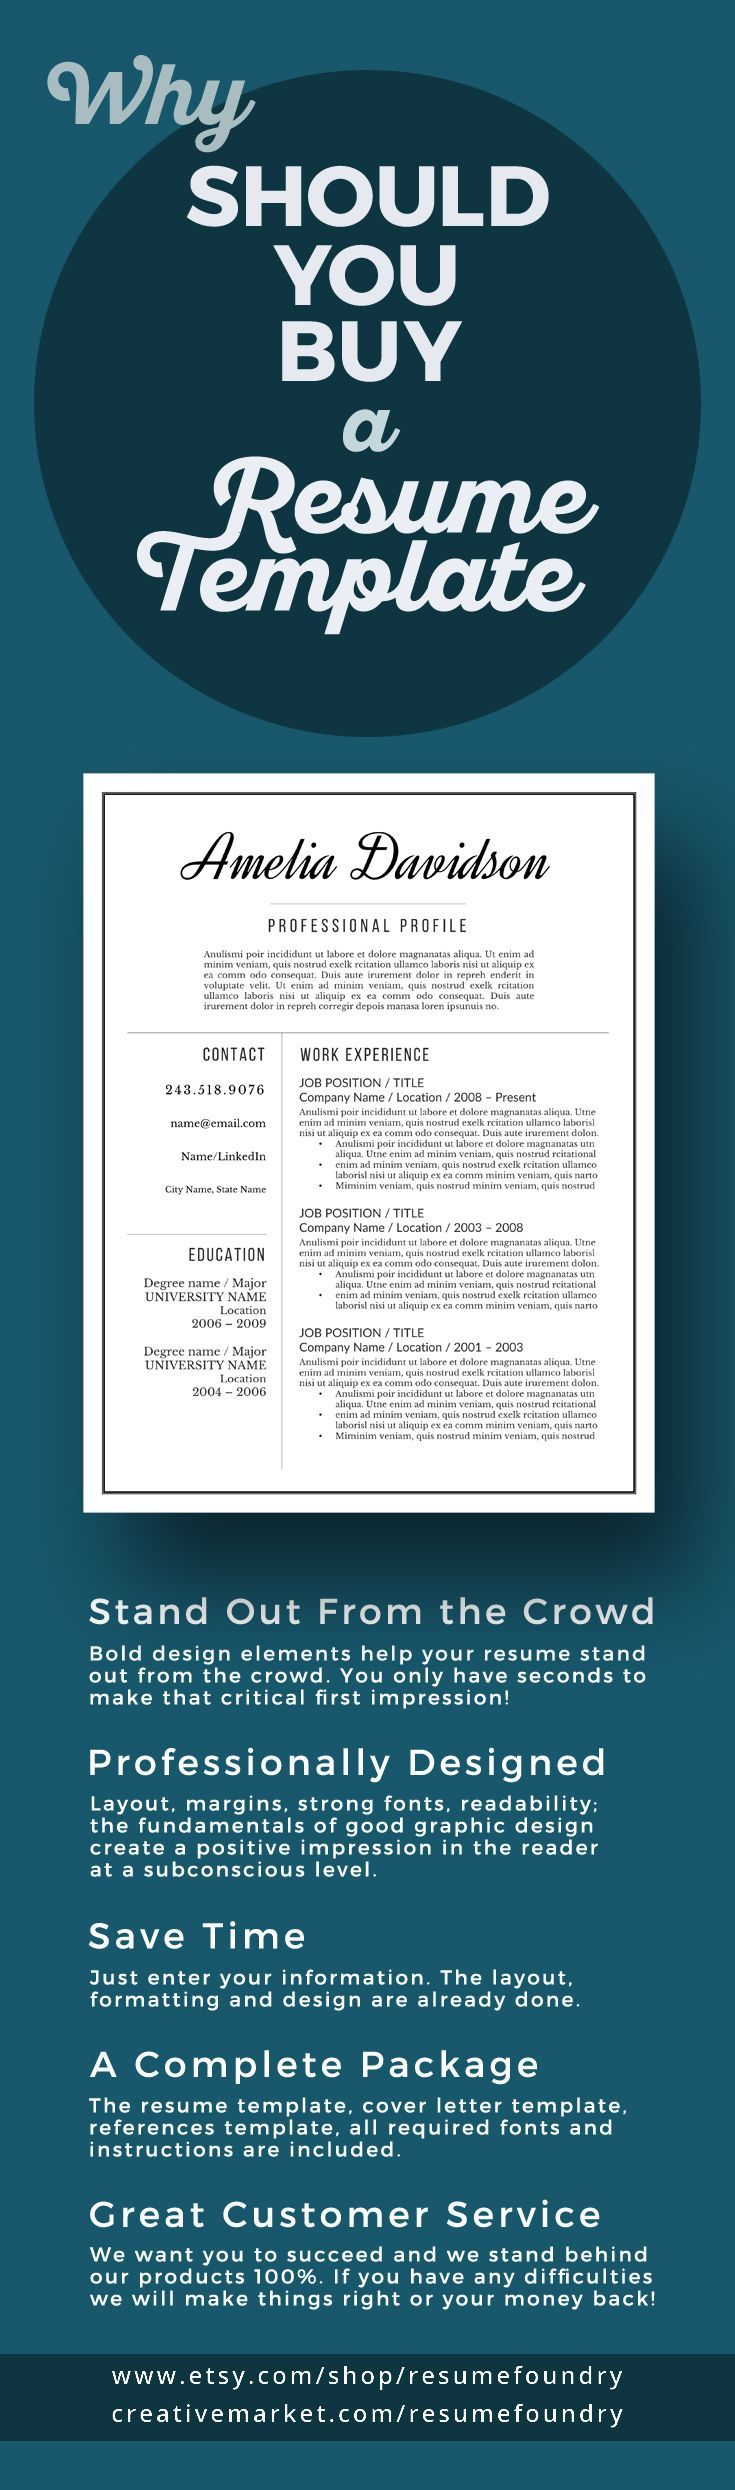 operations supervisor resume%0A Want to improve your chances of being noticed by recruiters  use a resume  template designed